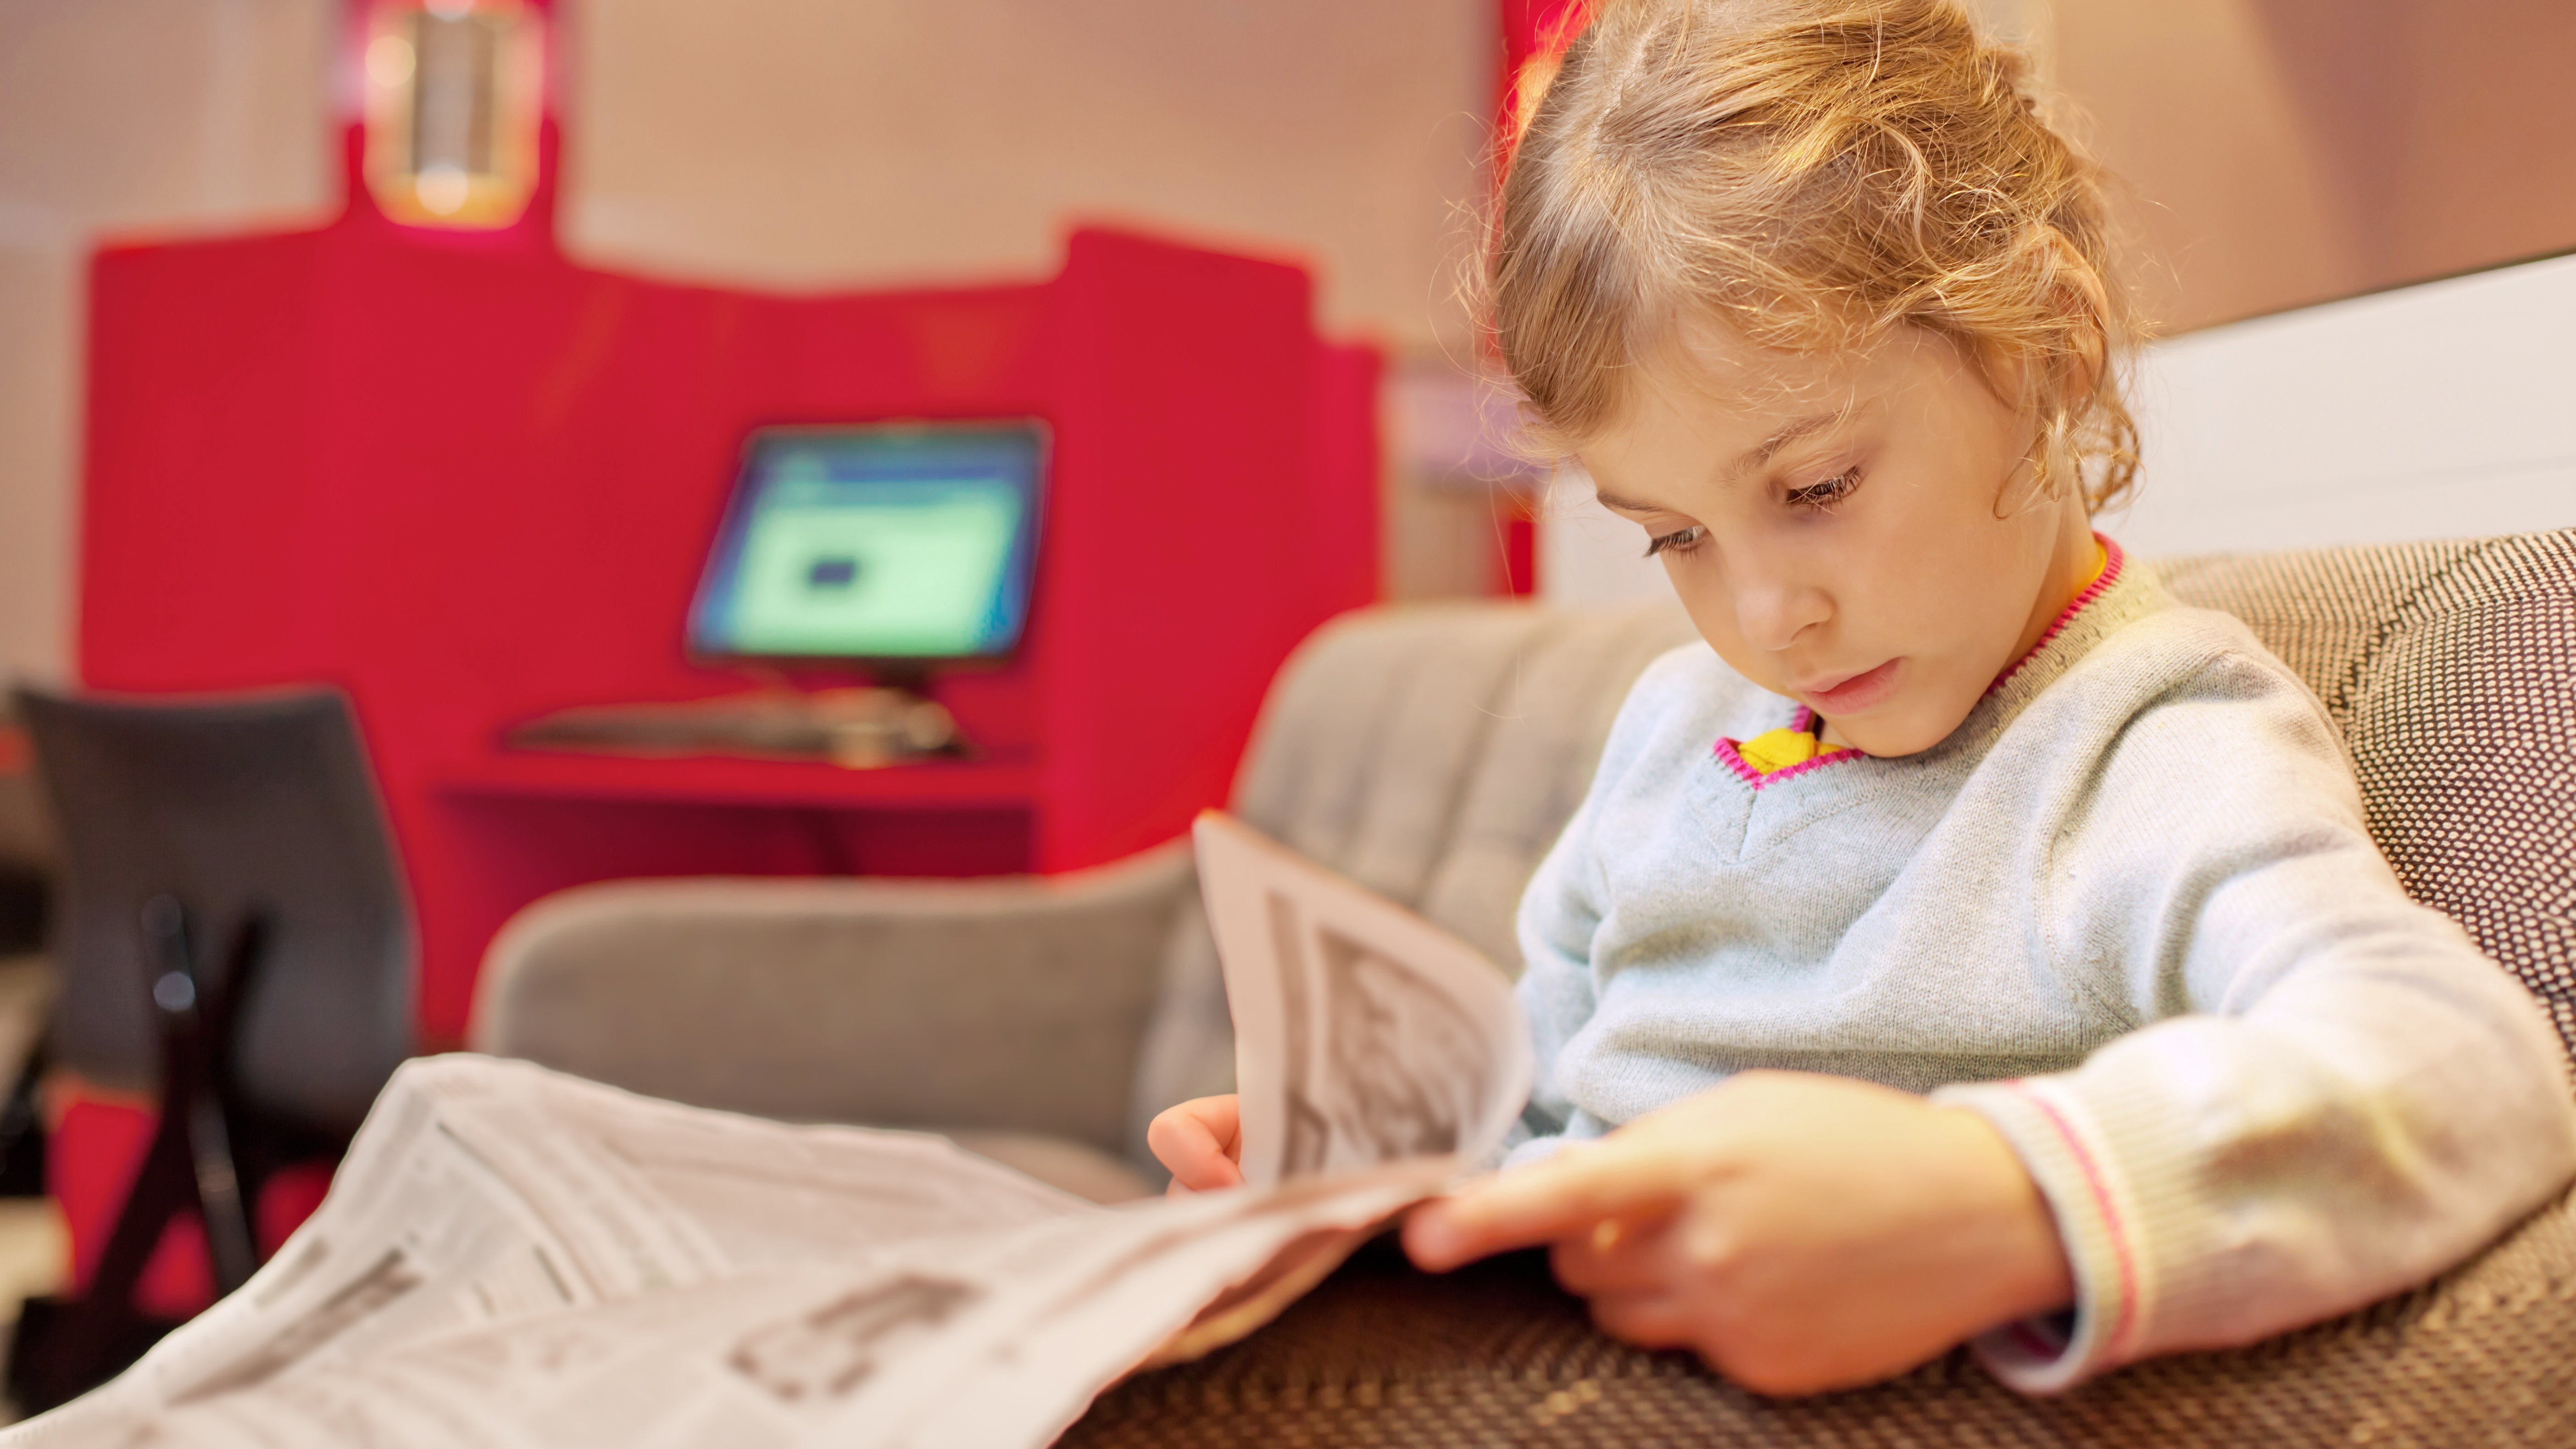 The Best News Outlets For Kids